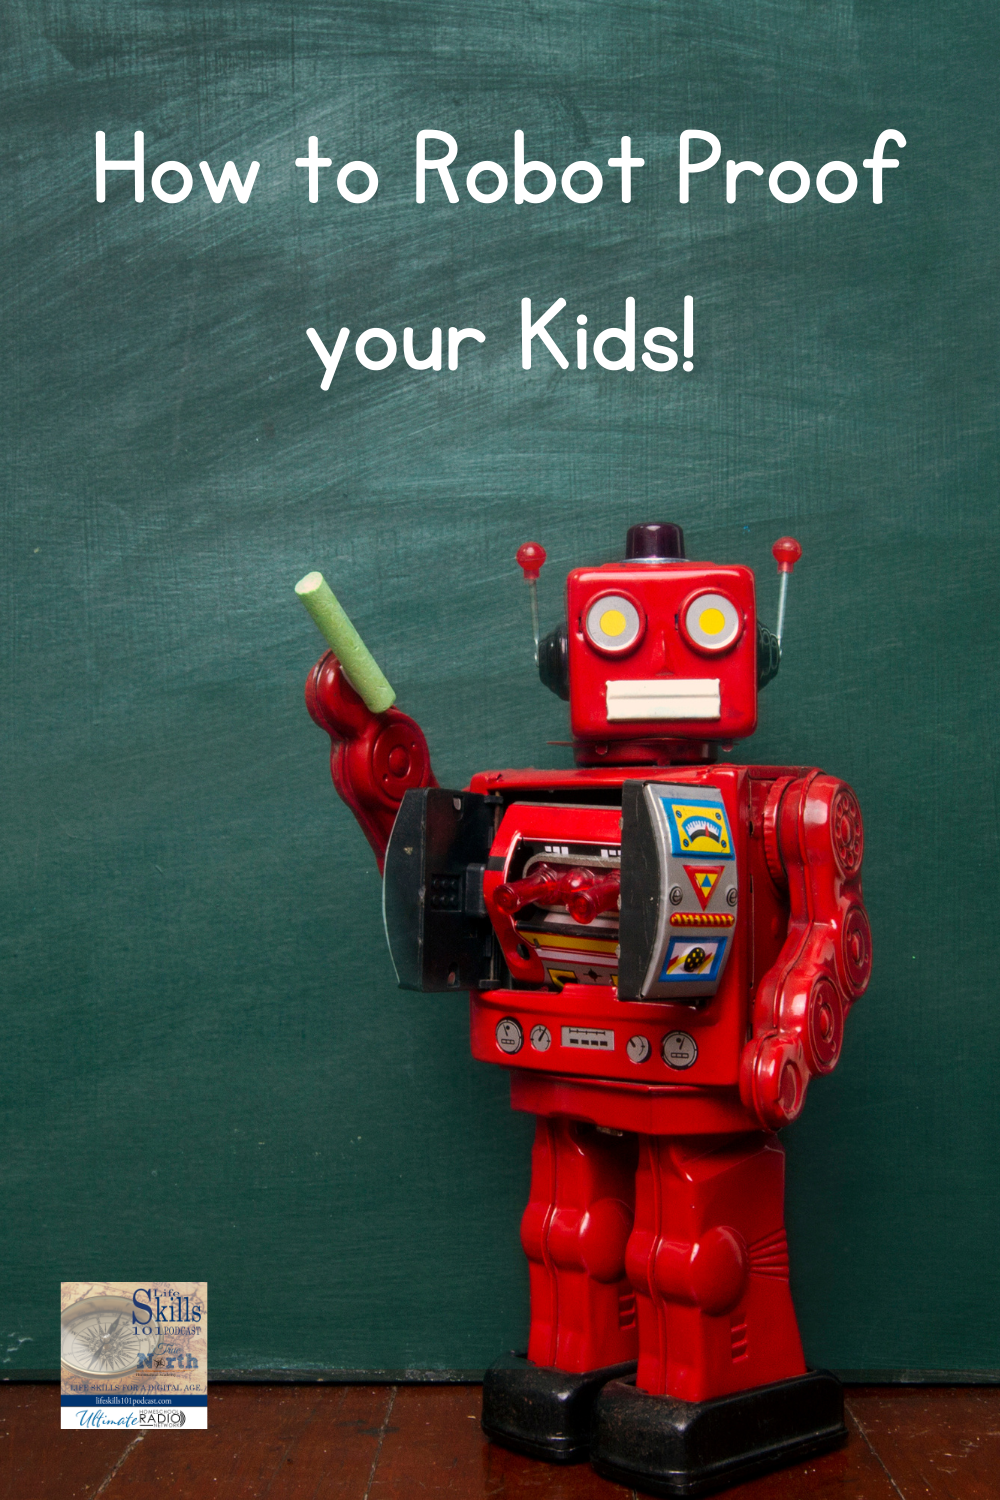 Your kids will live and work in a technological world full of Robots and Artificial Intelligence. How are we supposed to raise kids who have the know-how to compete in such a technological future? I'm glad you asked!